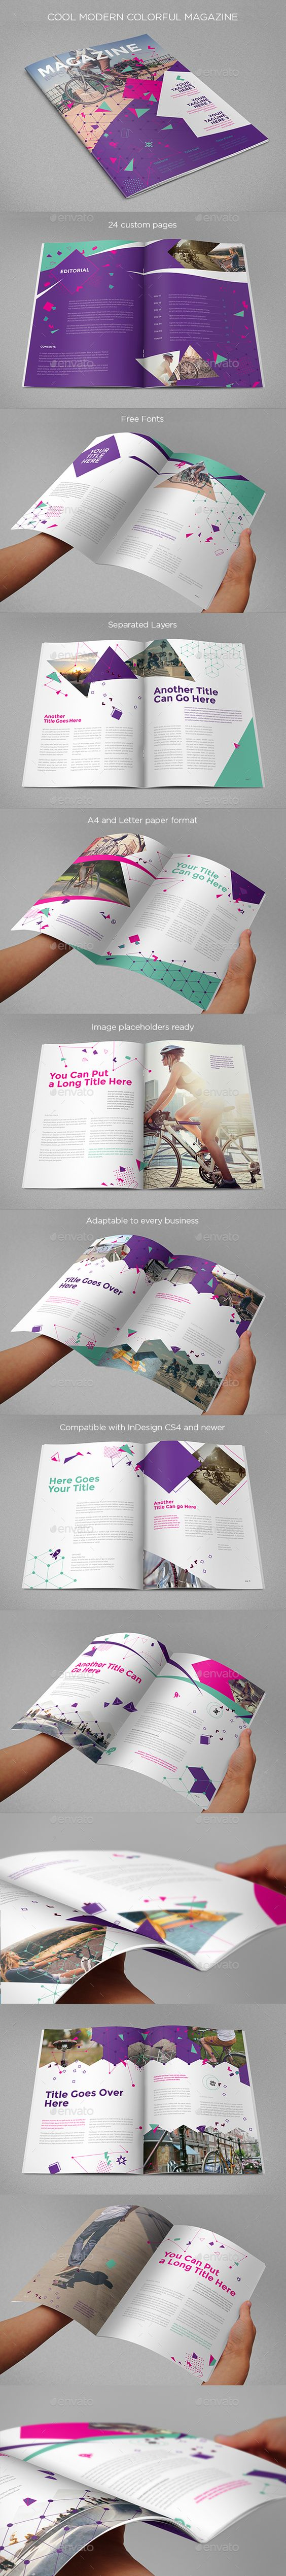 Cool Modern Colorful Magazine Template 	InDesign INDD #design Download: http://graphicriver.net/item/cool-modern-colorful-magazine/14204823?ref=ksioks